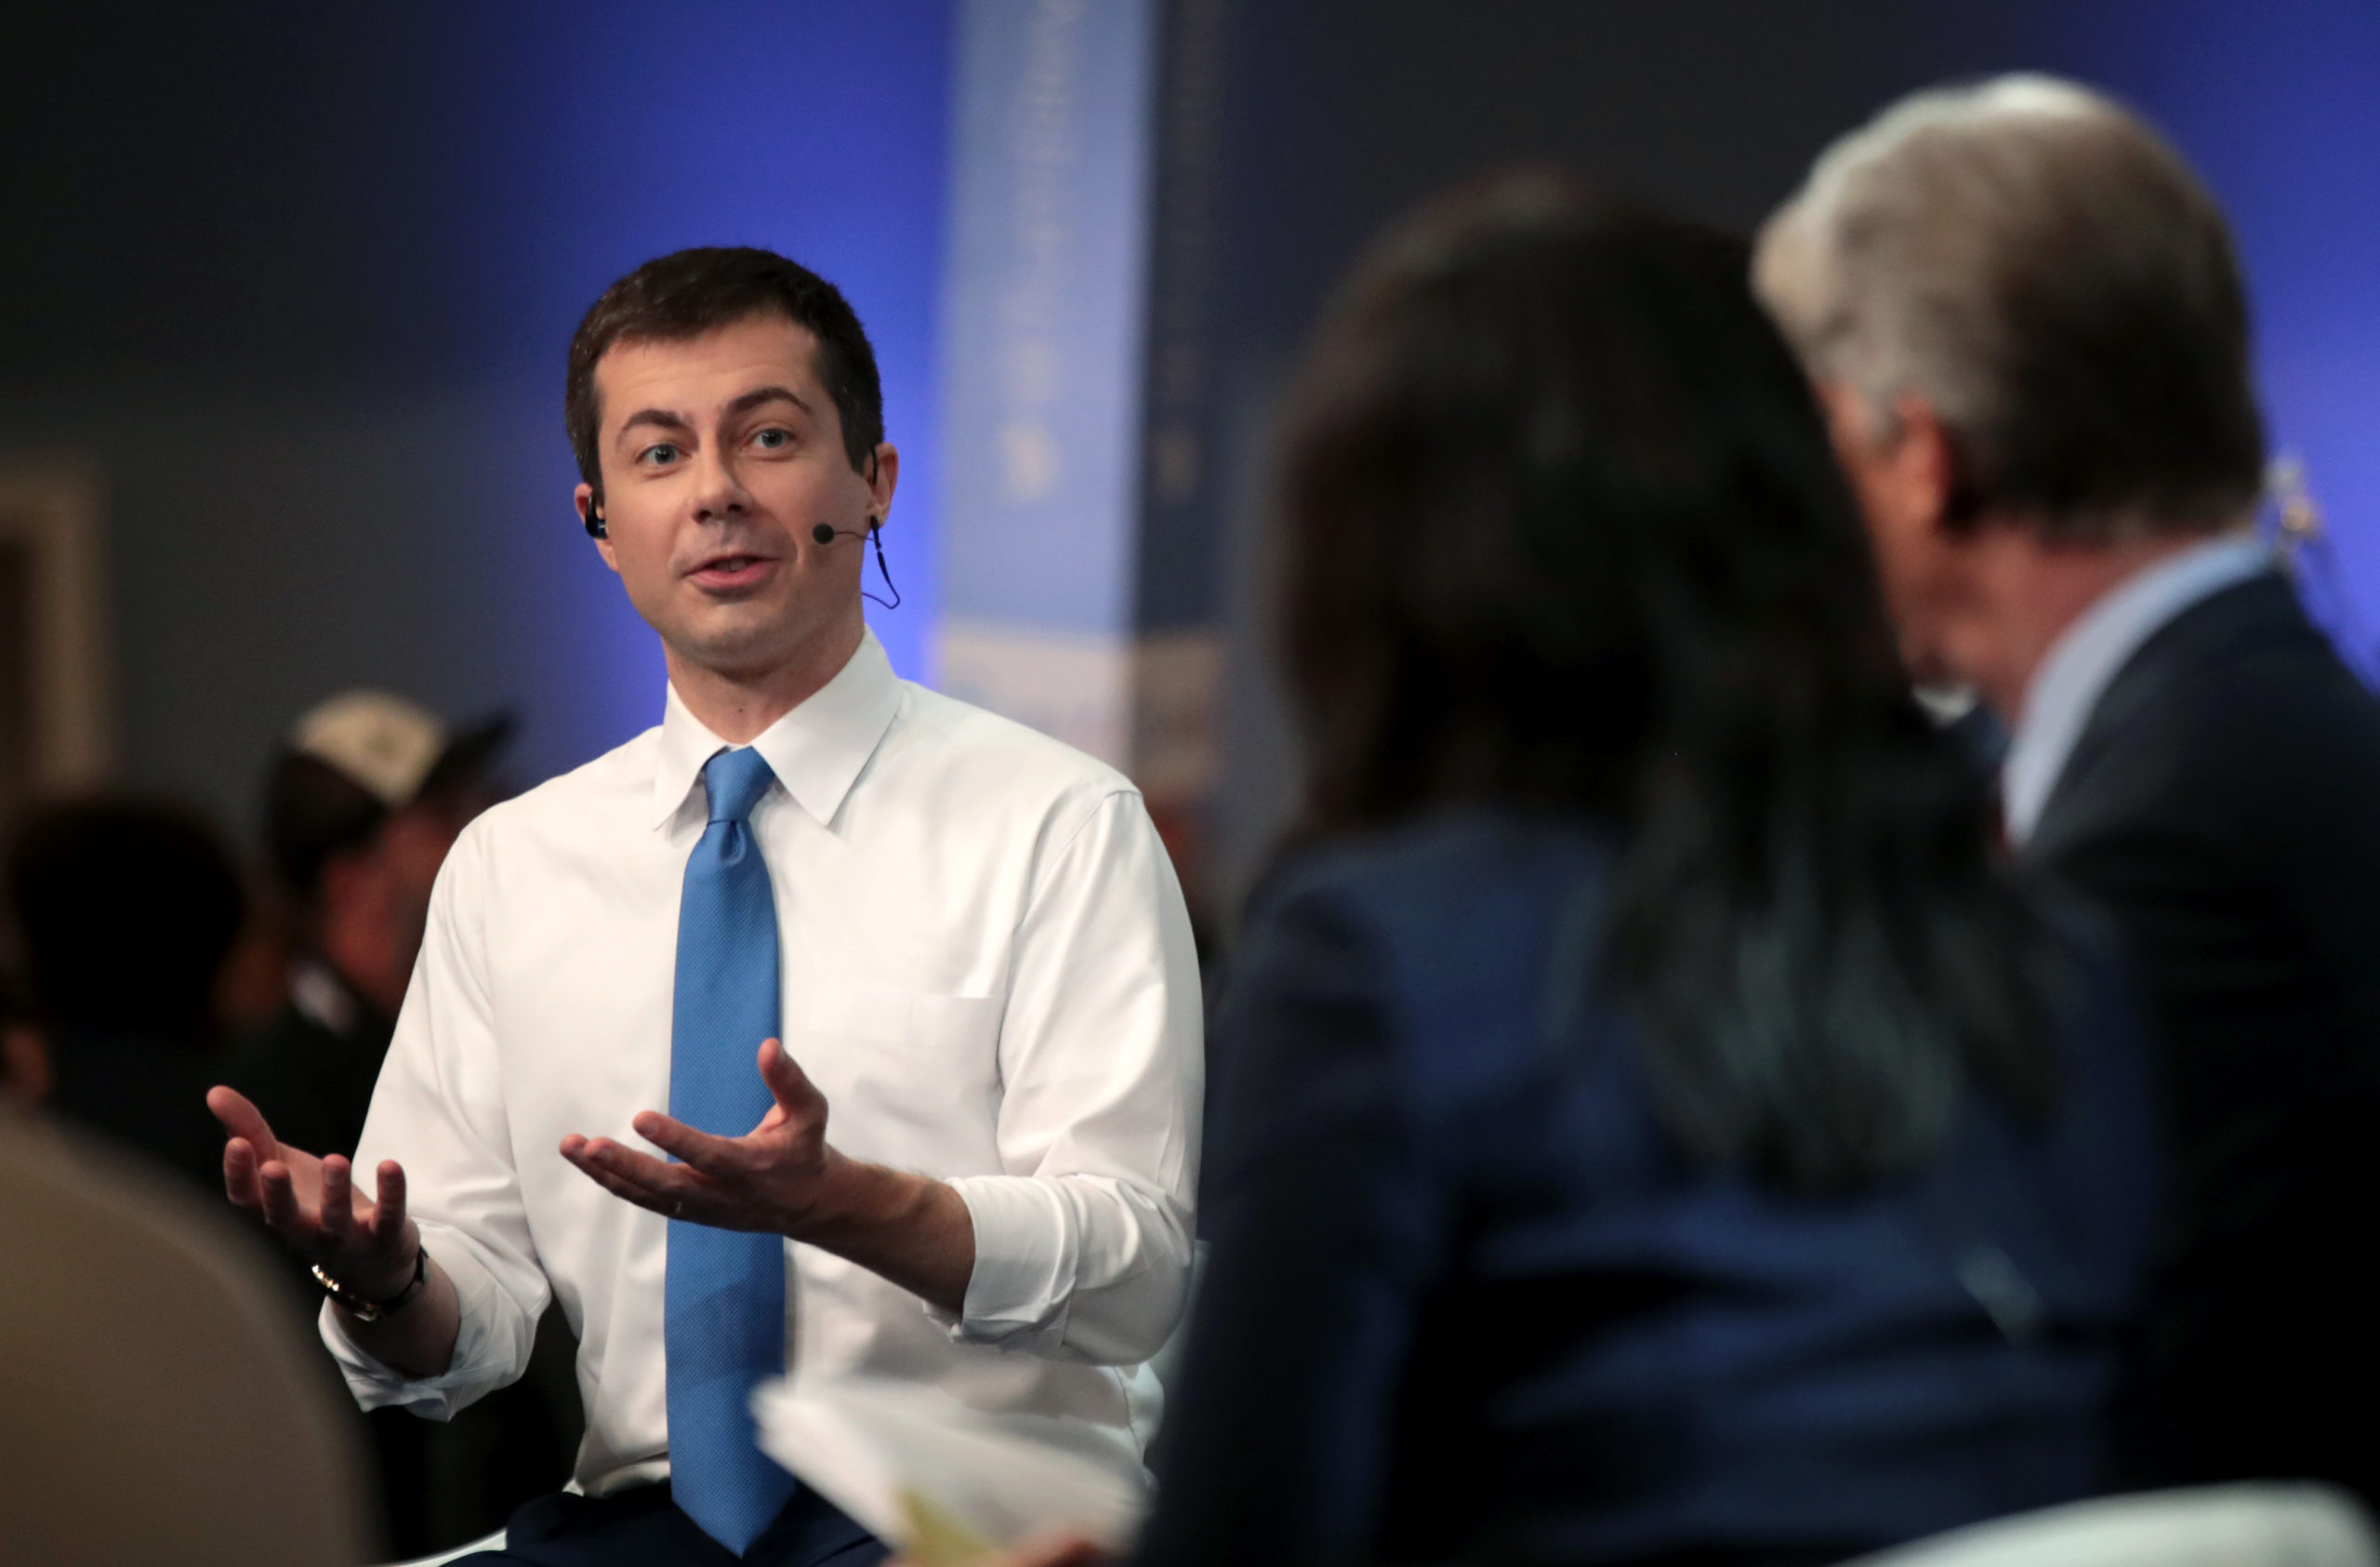 Democratic presidential candidate Pete Buttigieg was grilled by LGBT+ Twitter users for comments made during the Democratic debates. (Scott Olson/Getty Images)